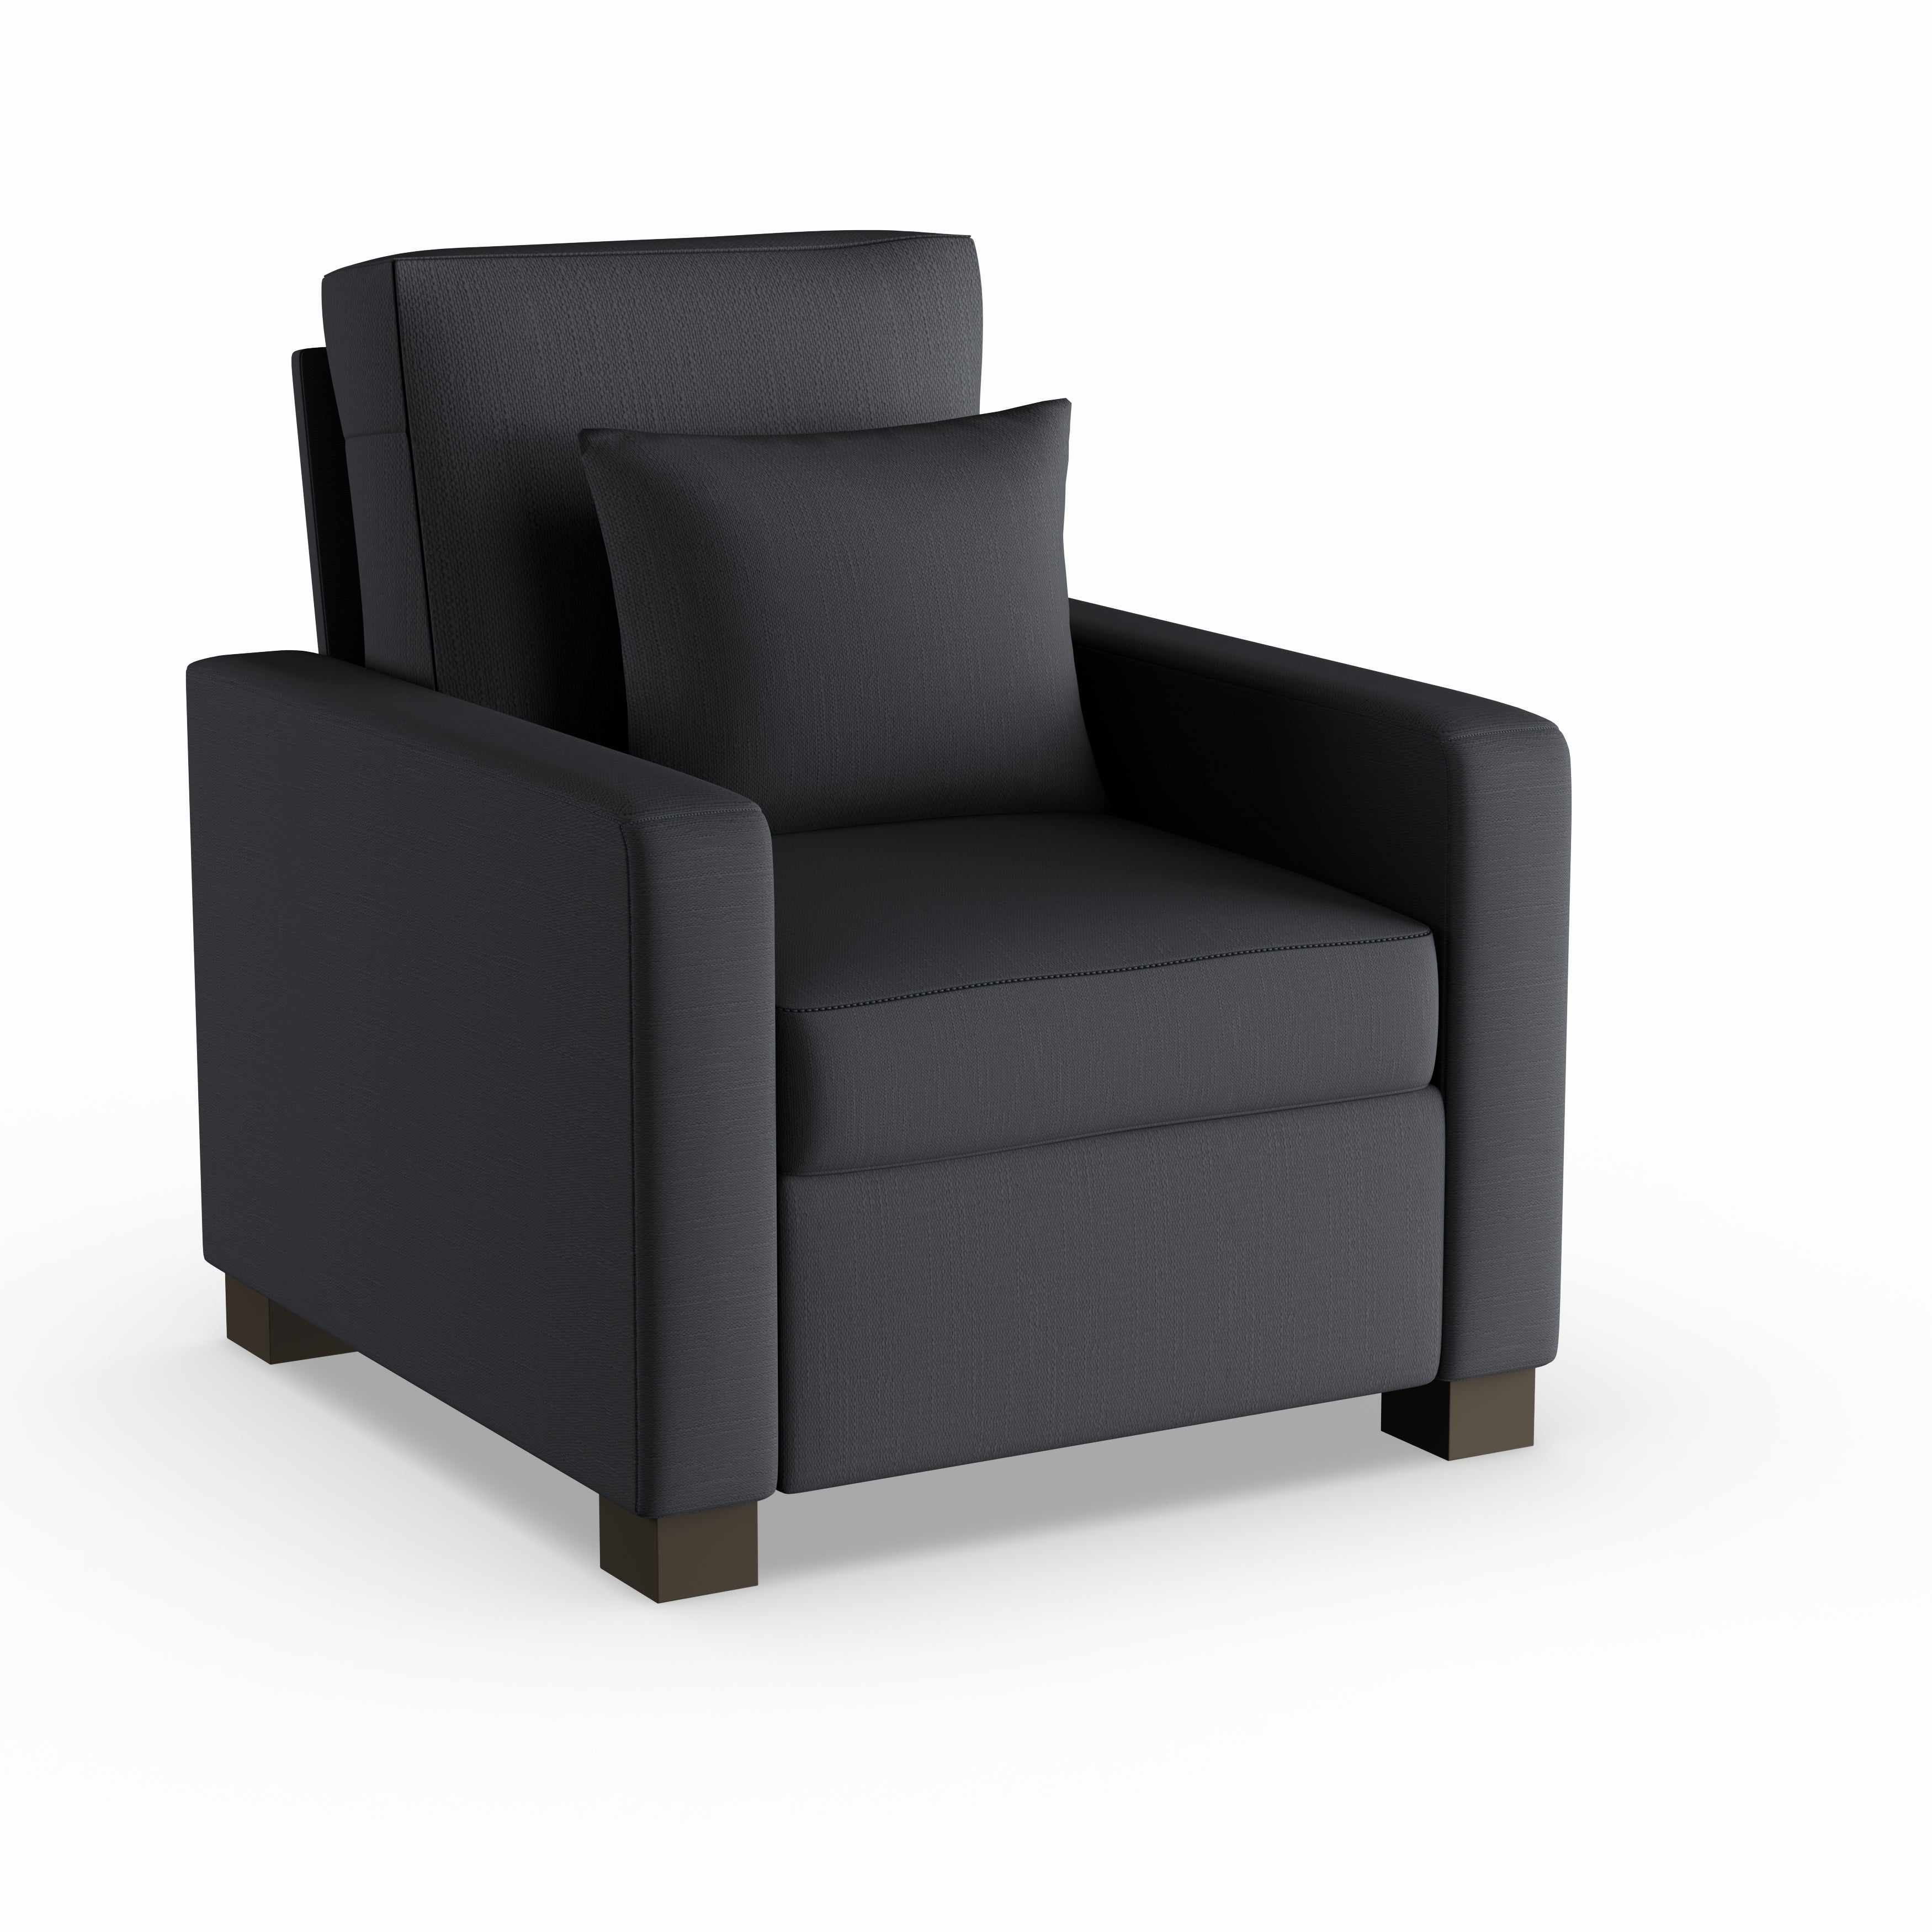 Shop Porch   Den Abbott Chair with Pillows - Free Shipping Today -  Overstock.com - 21426933 42b5eafe571